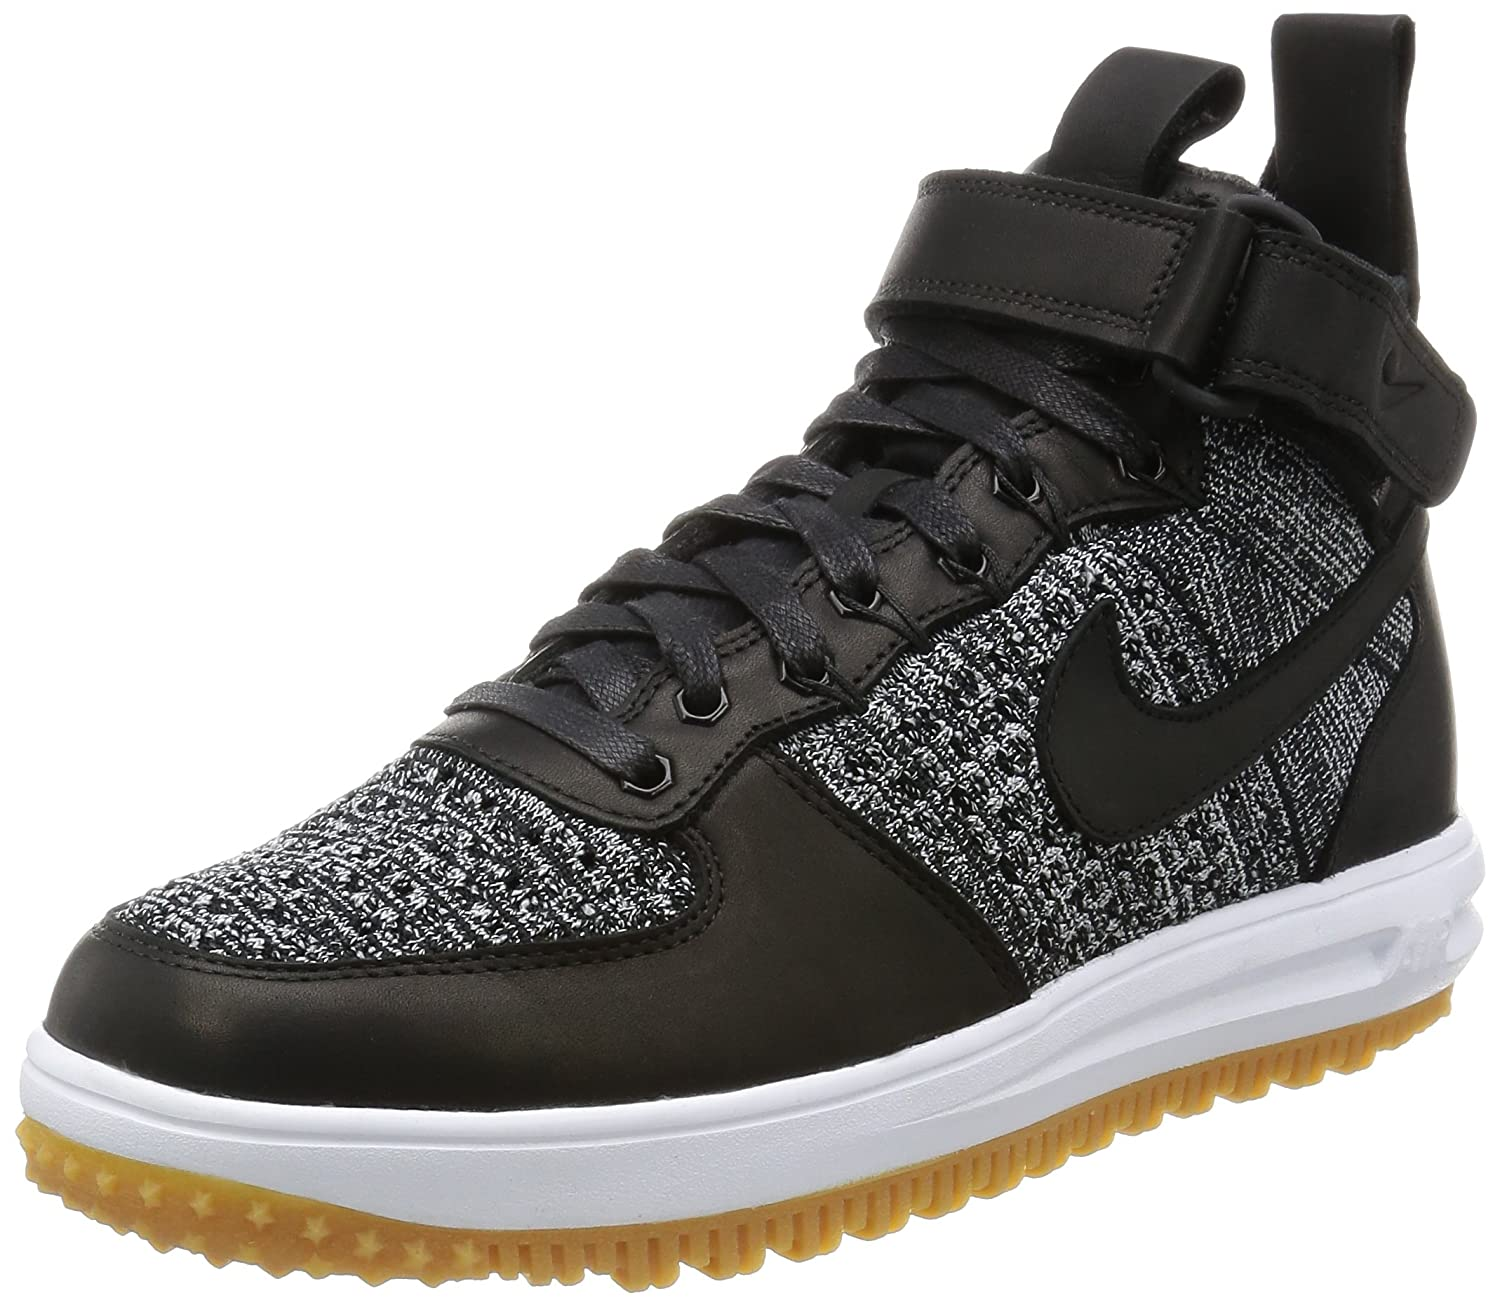 new style 10f6f 99de3 Amazon.com   Nike Lunar Force 1 Flyknit Workboot Mens Boots c 855984 (11,  BLACK WHITE-WOLF GREY)   Fashion Sneakers